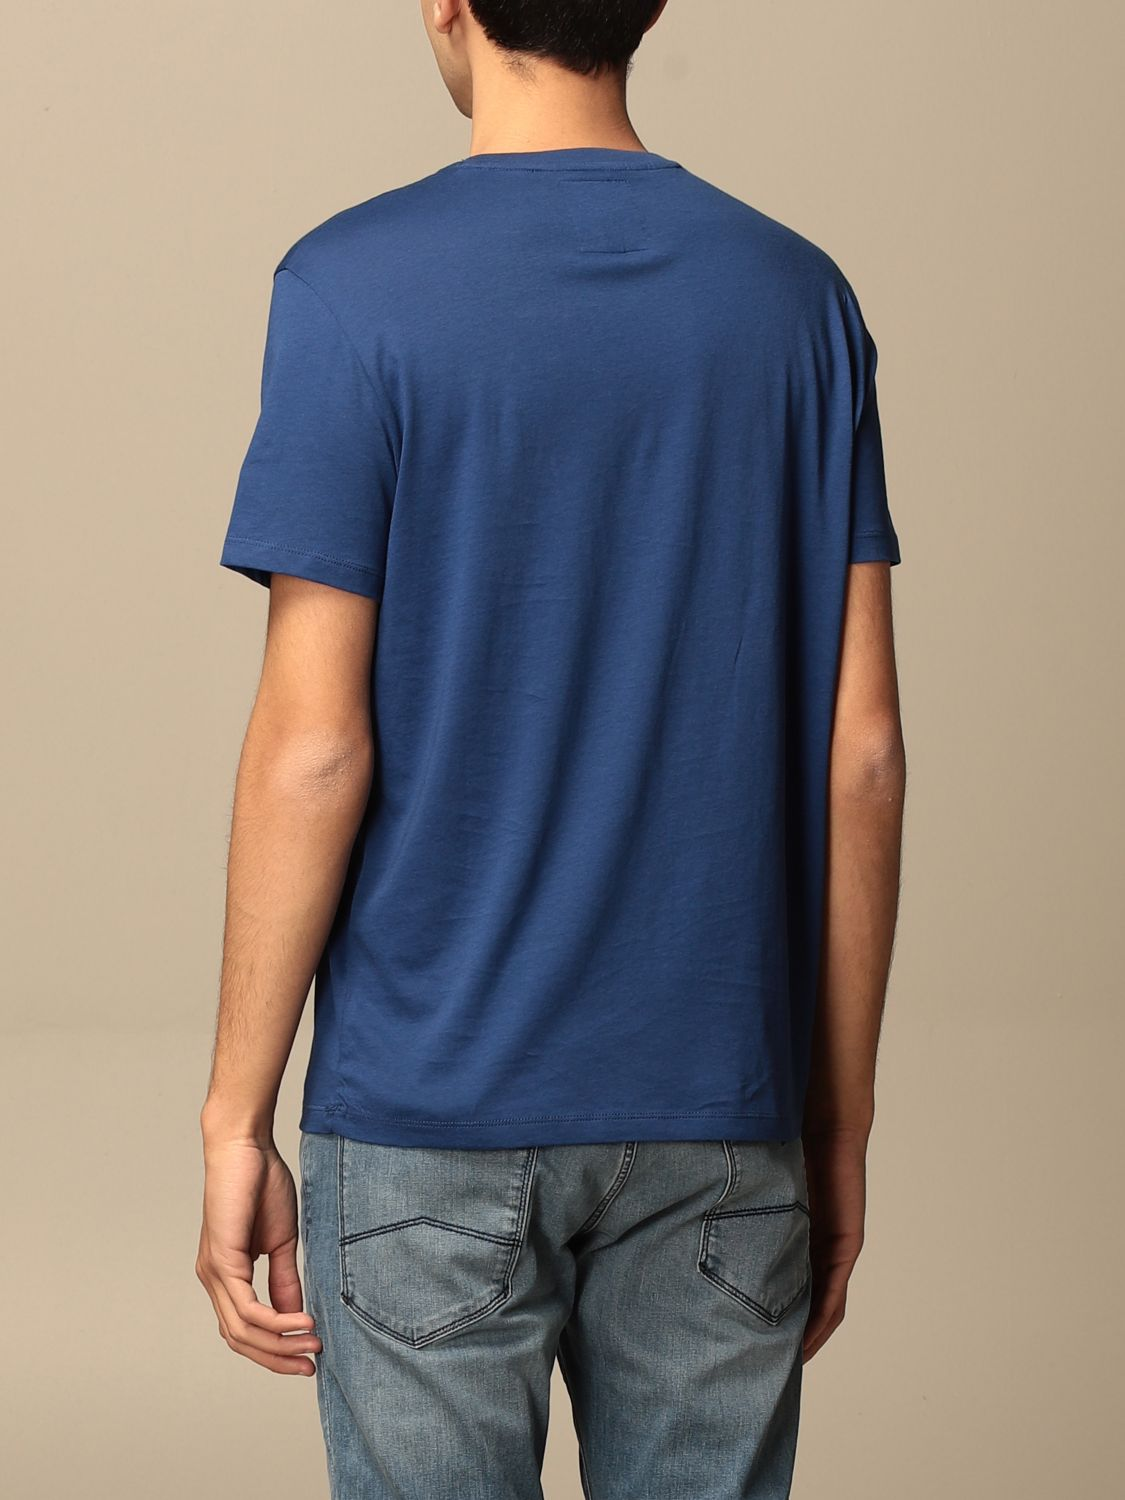 T-shirt Armani Exchange: Armani Exchange T-shirt with logo blue 2